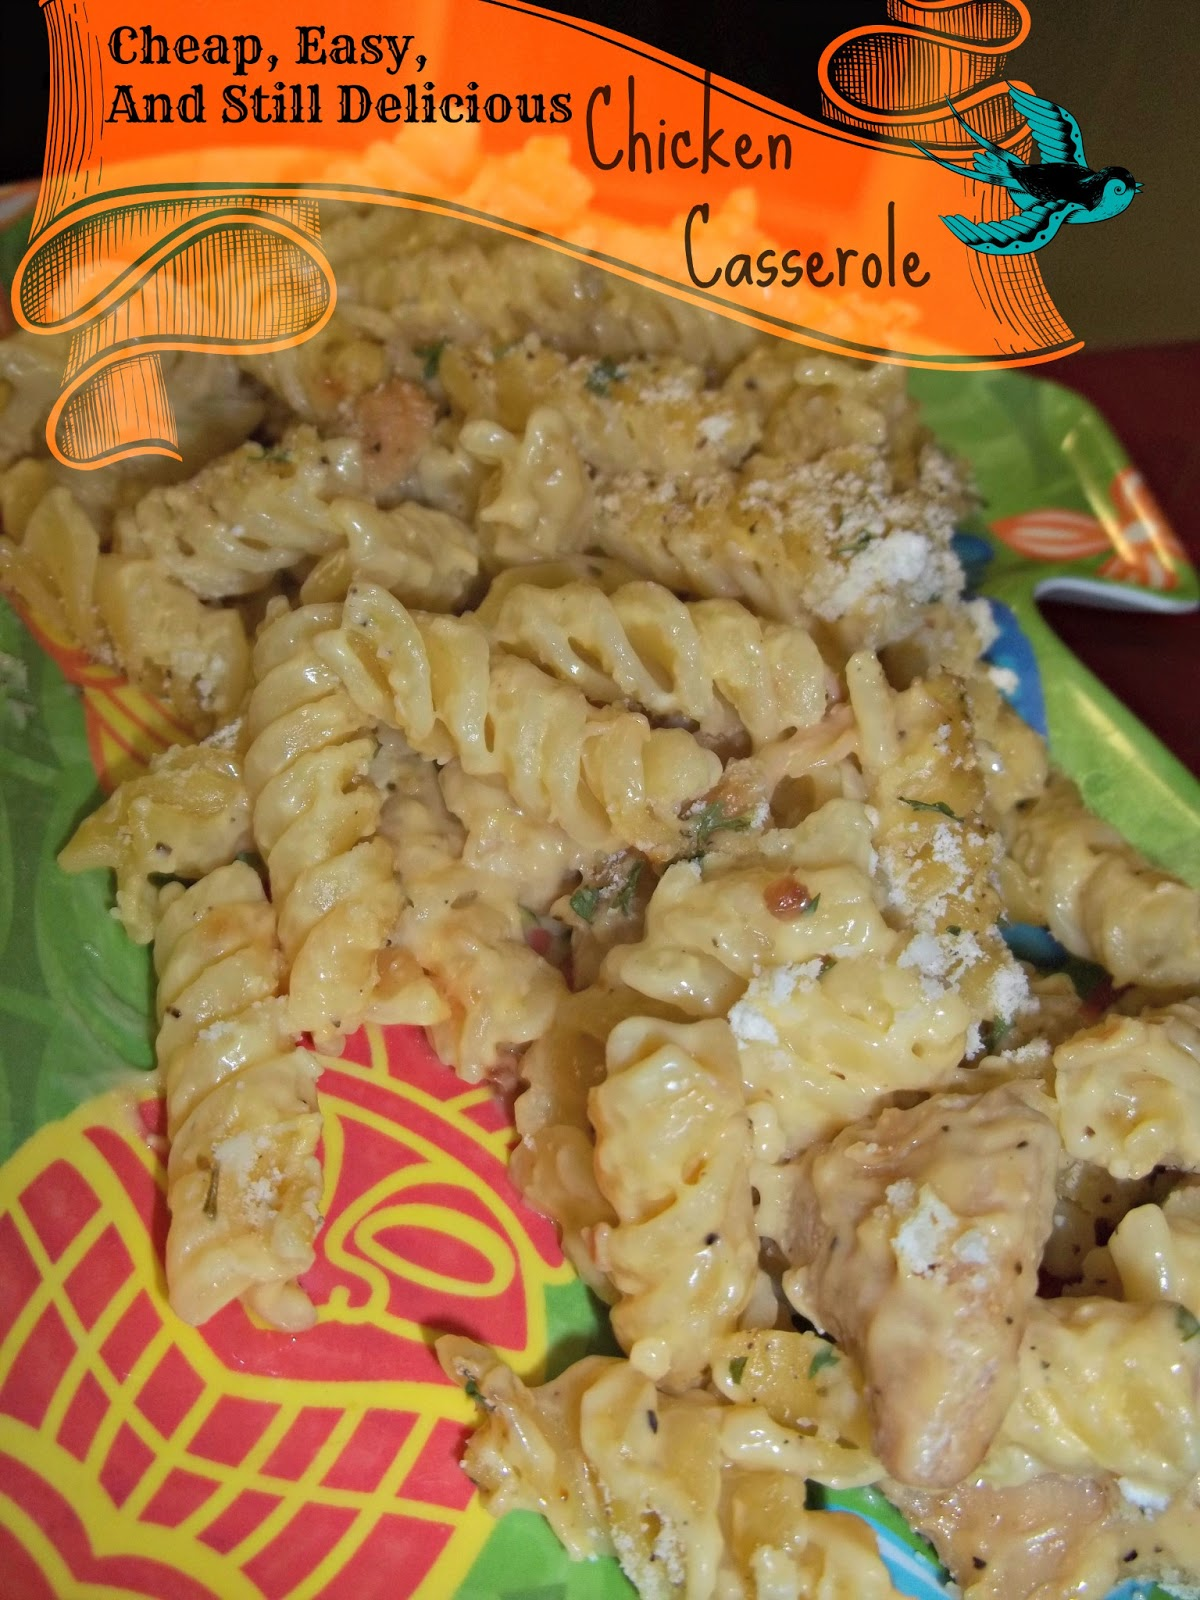 ... Grillin': Cheap, Easy & Still Delicious Chicken Casserole Recipe